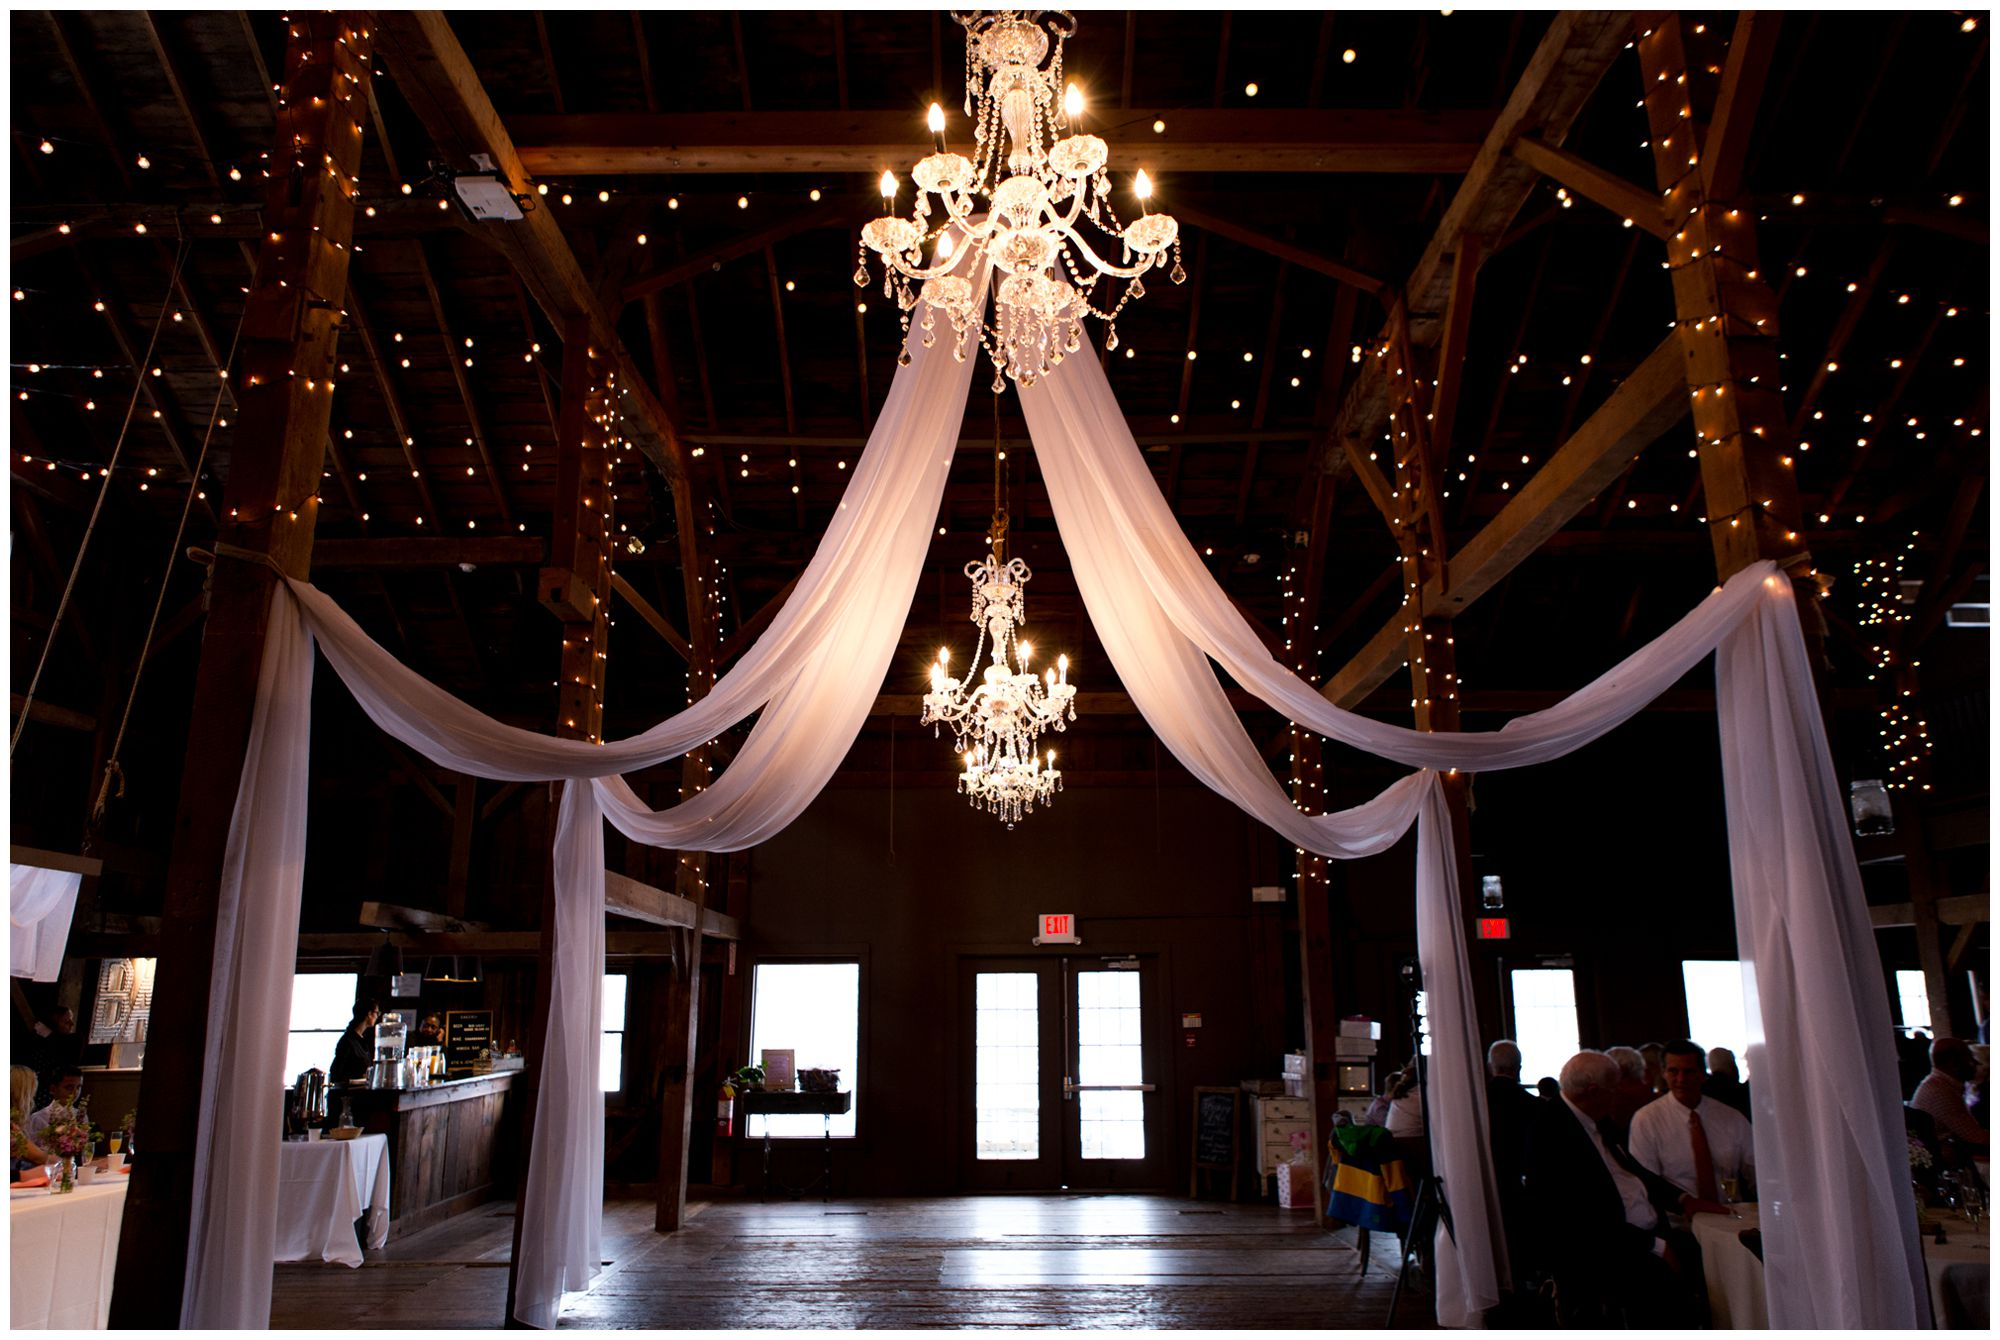 Mustard Seed Gardens Olde Barn wedding reception decor